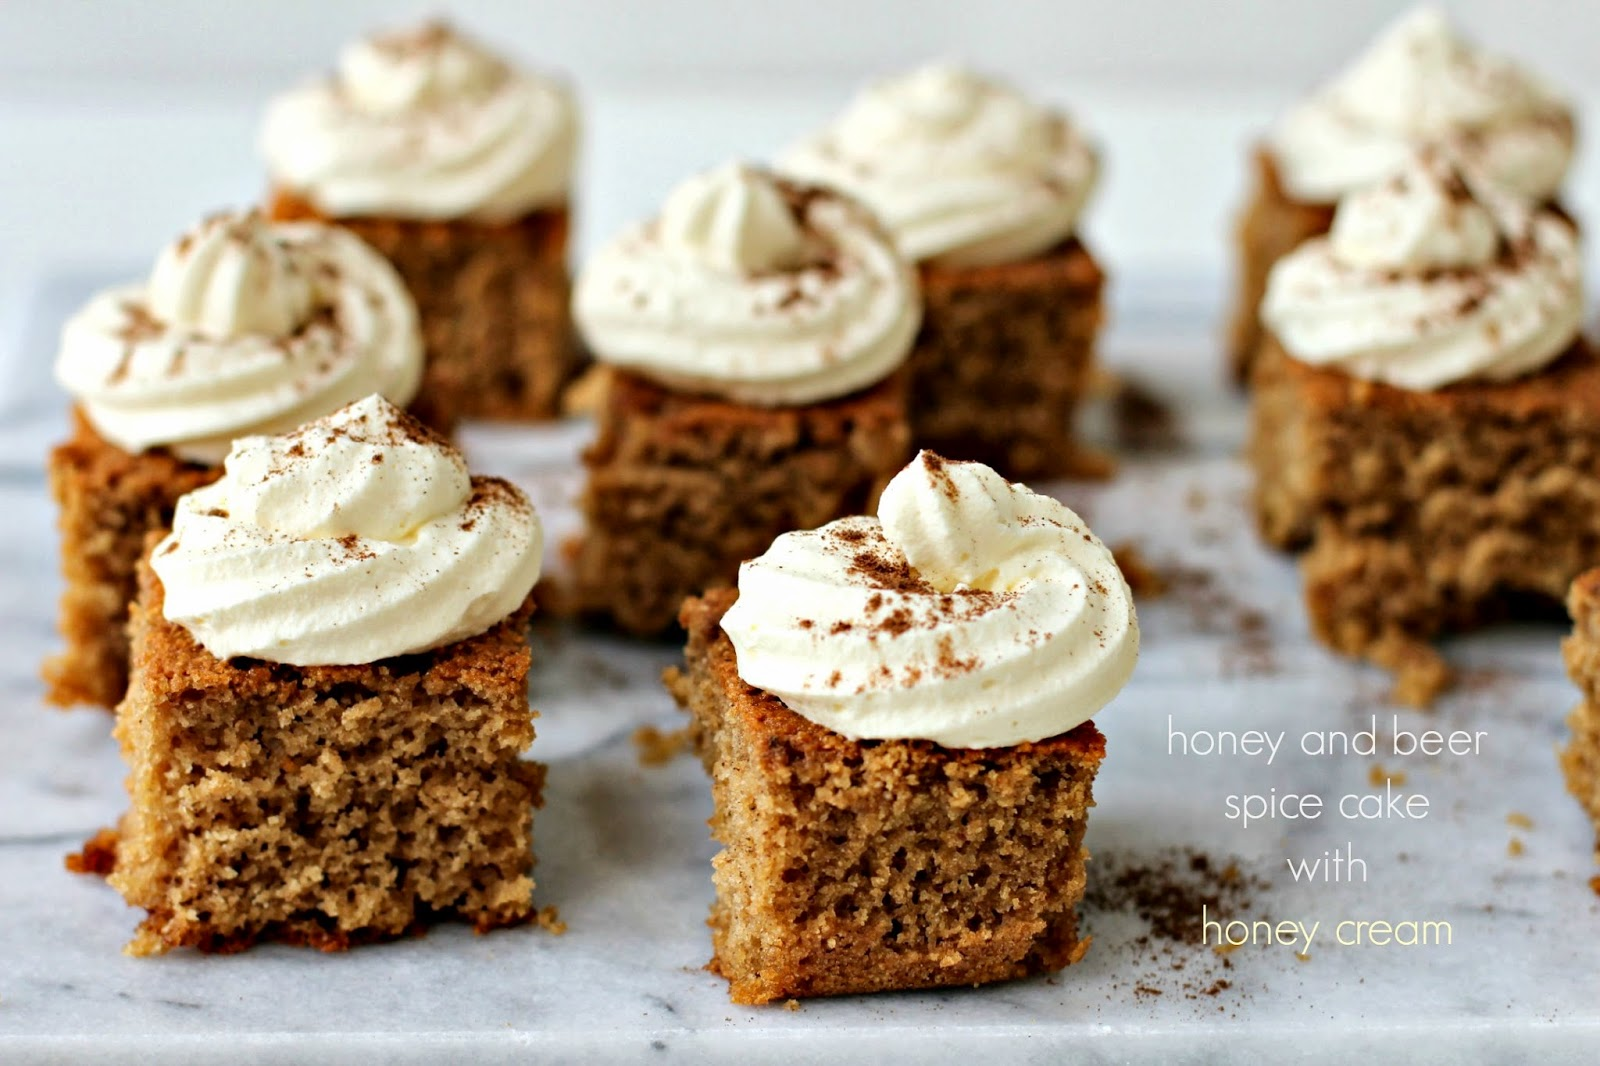 Honey and Beer Spice Cake with Honey Cream